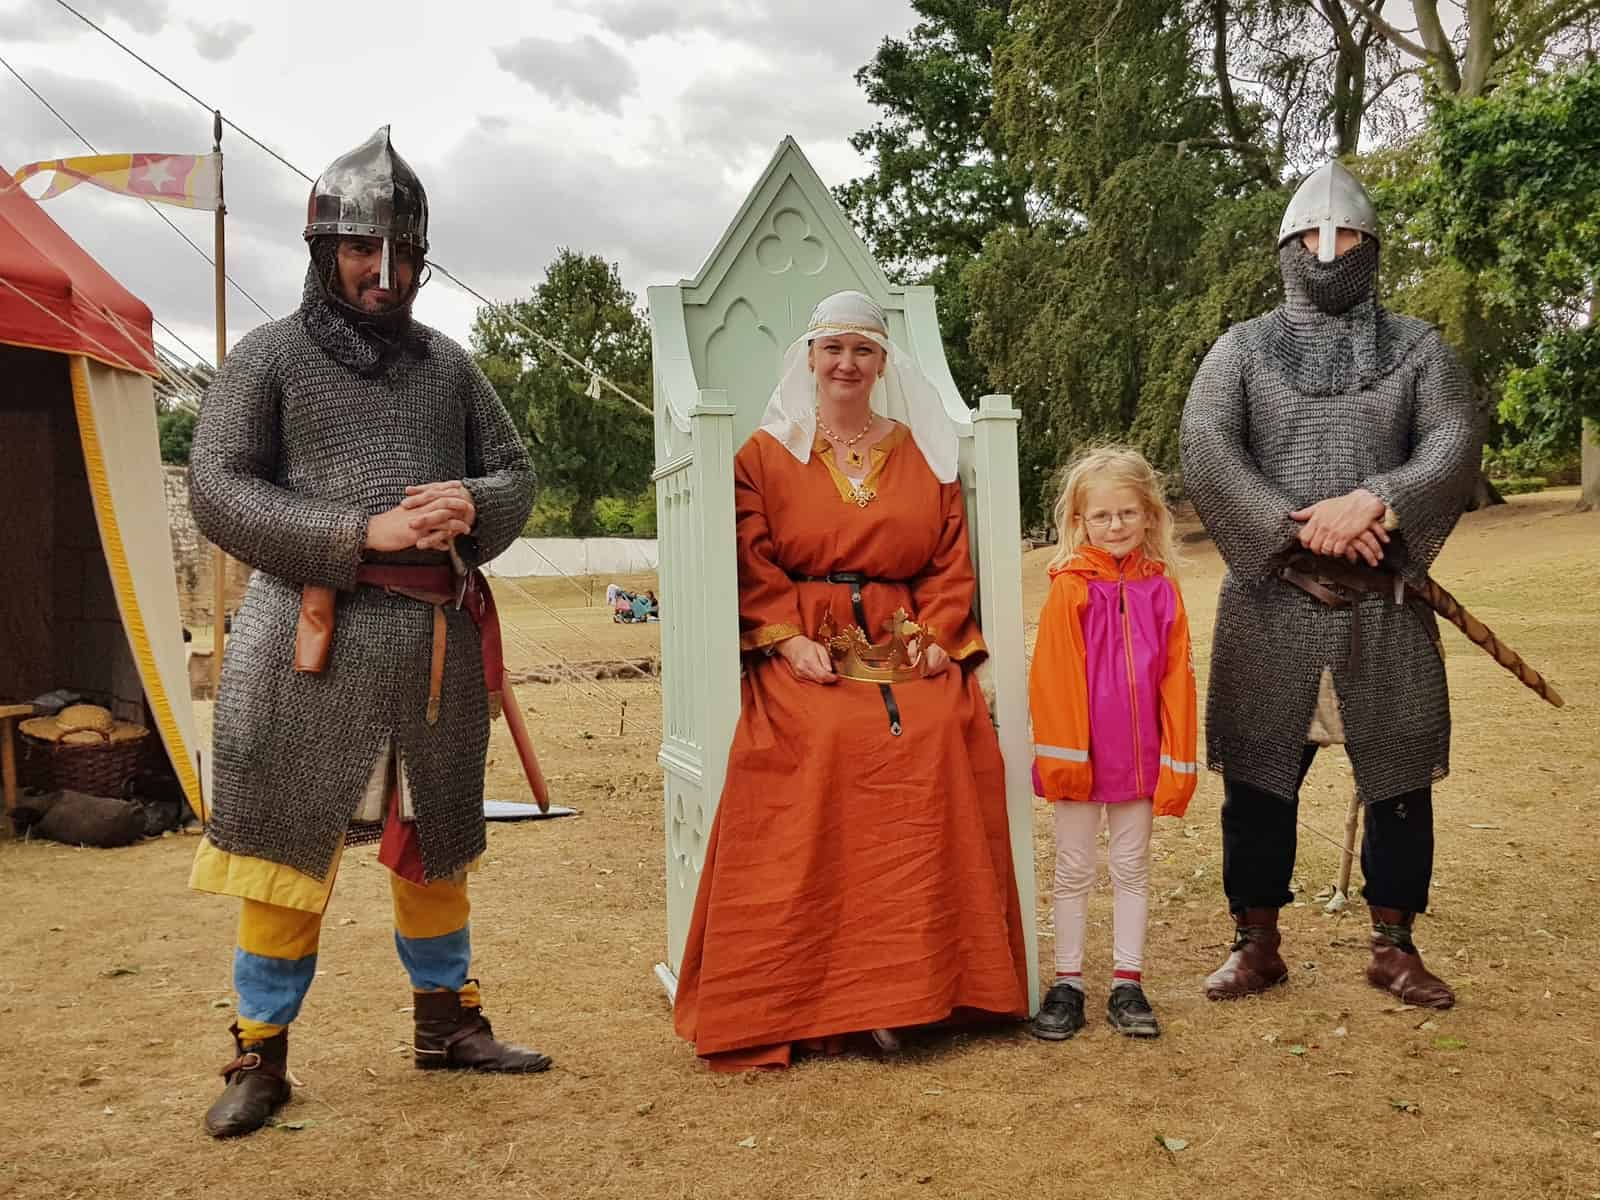 Kenilworth Castle Warwickshire Empress Matilda and knights at Norman Castle event